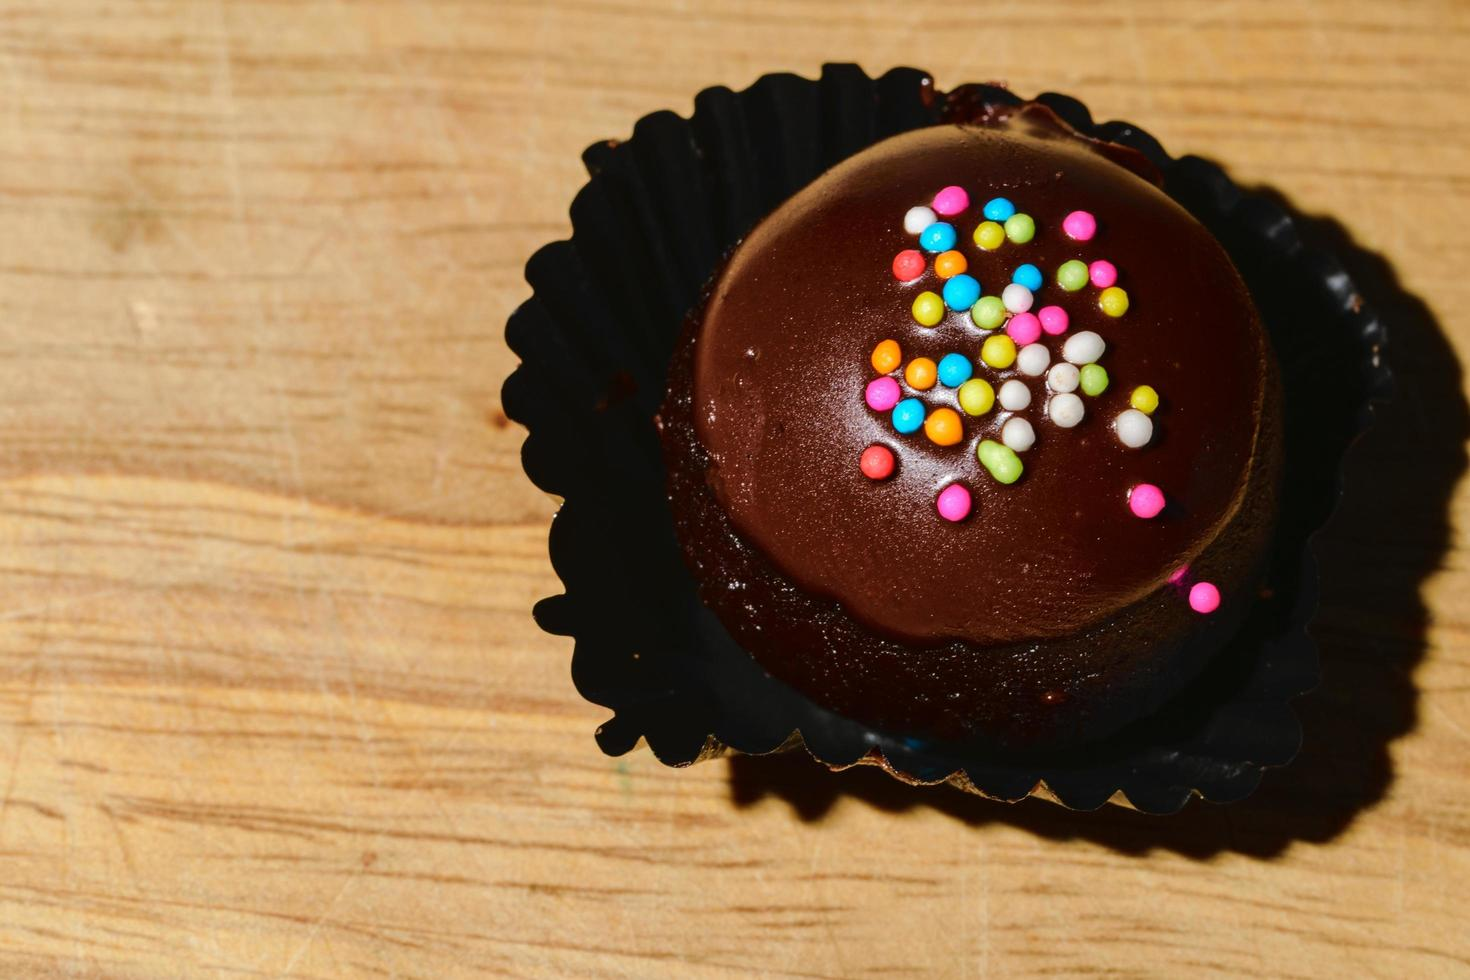 chocolade cup cakes close-up foto